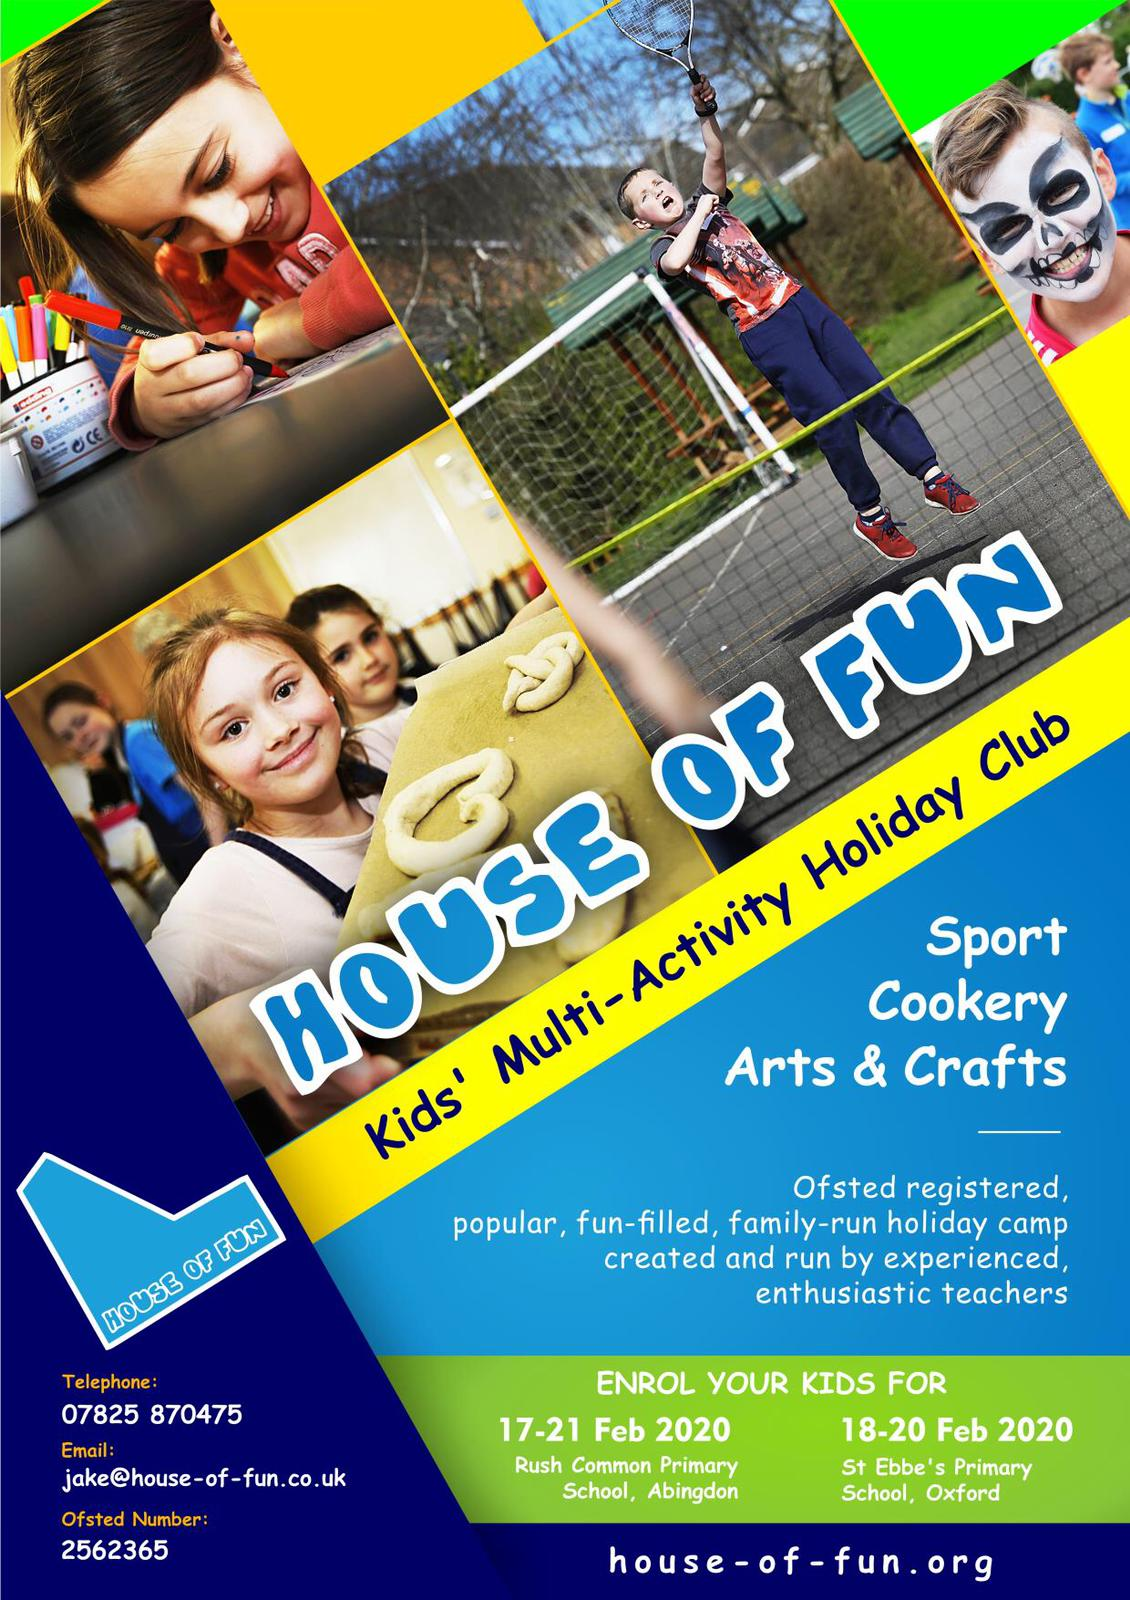 House of Fun at St Ebbe's - February Half Term